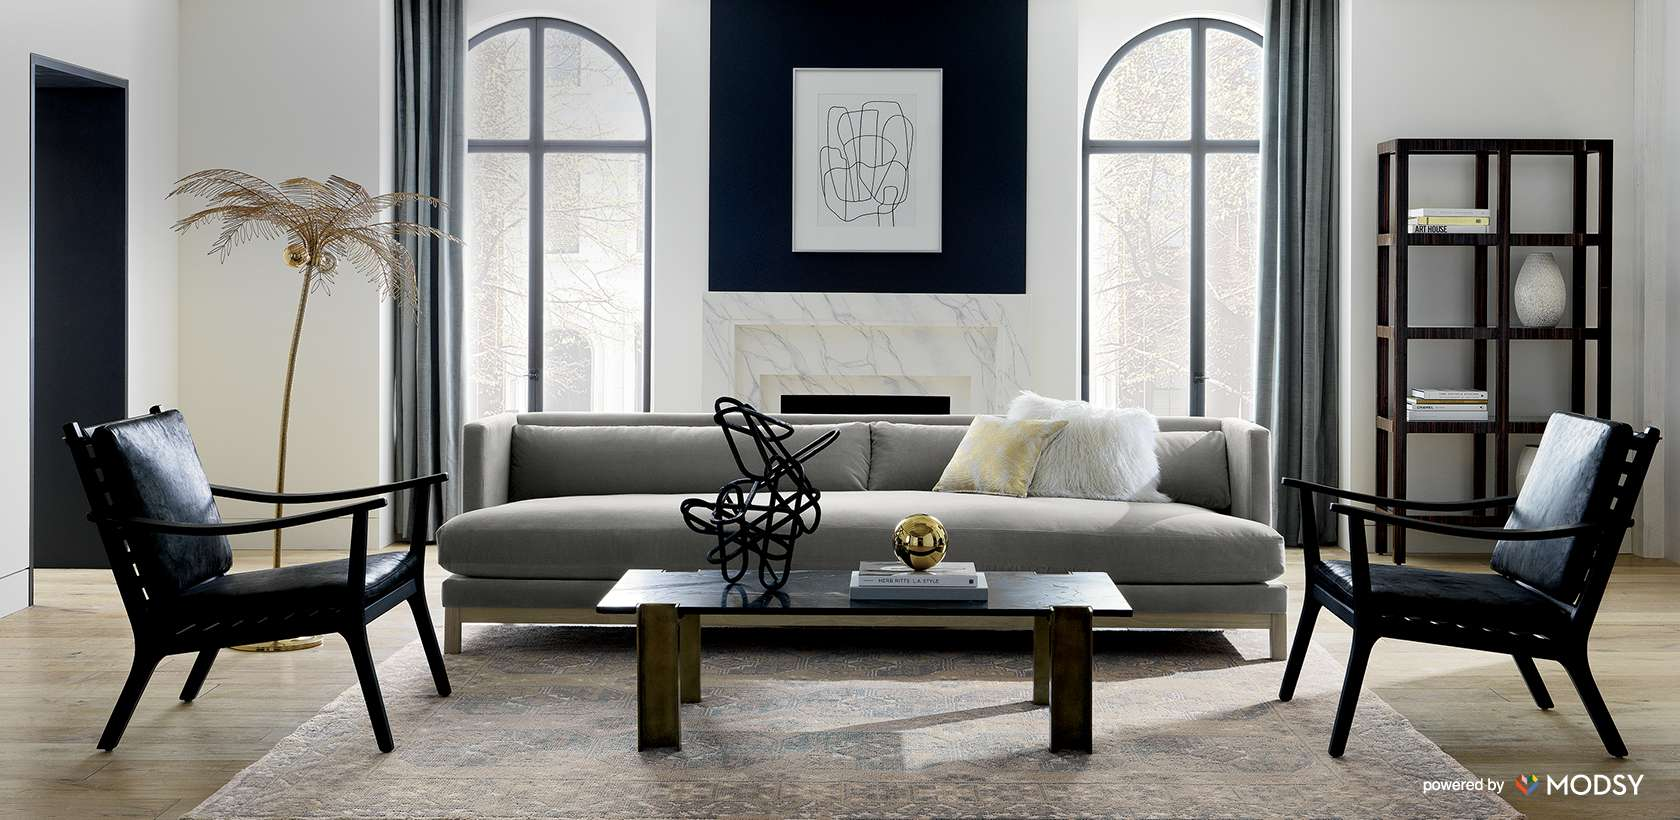 4 Handy Tips For Wooden Furniture Care